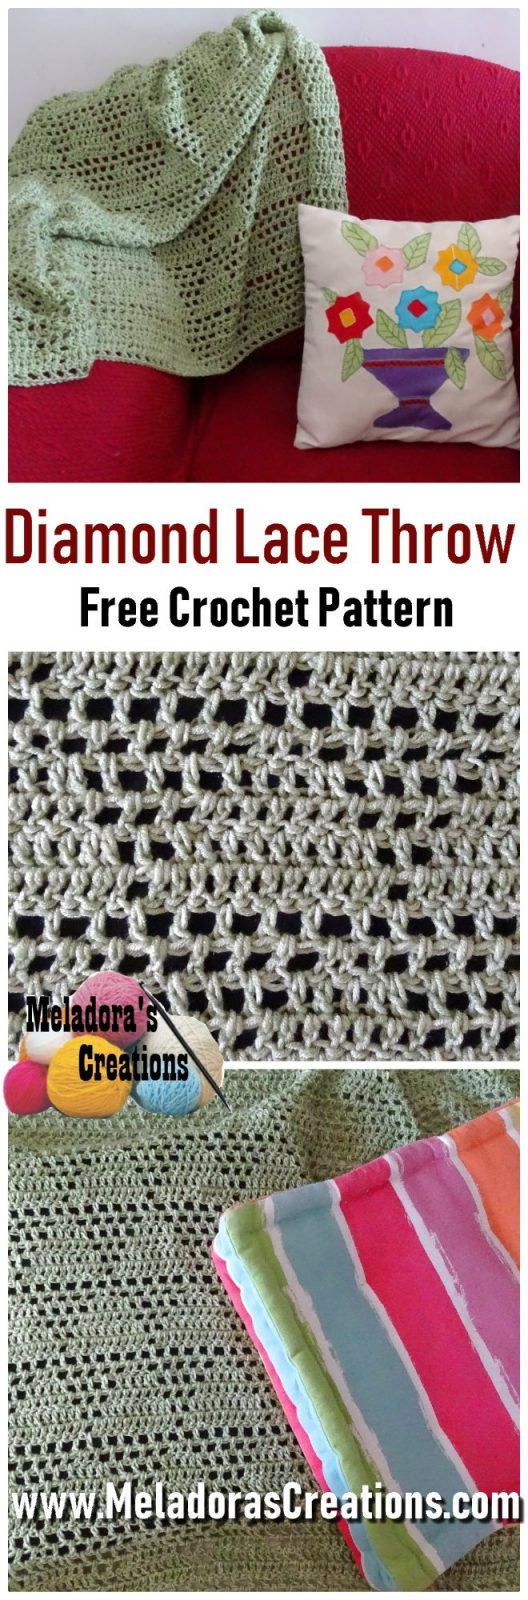 Diamond Lace Afghan Free Crochet Pattern And Tutorial Meladoras